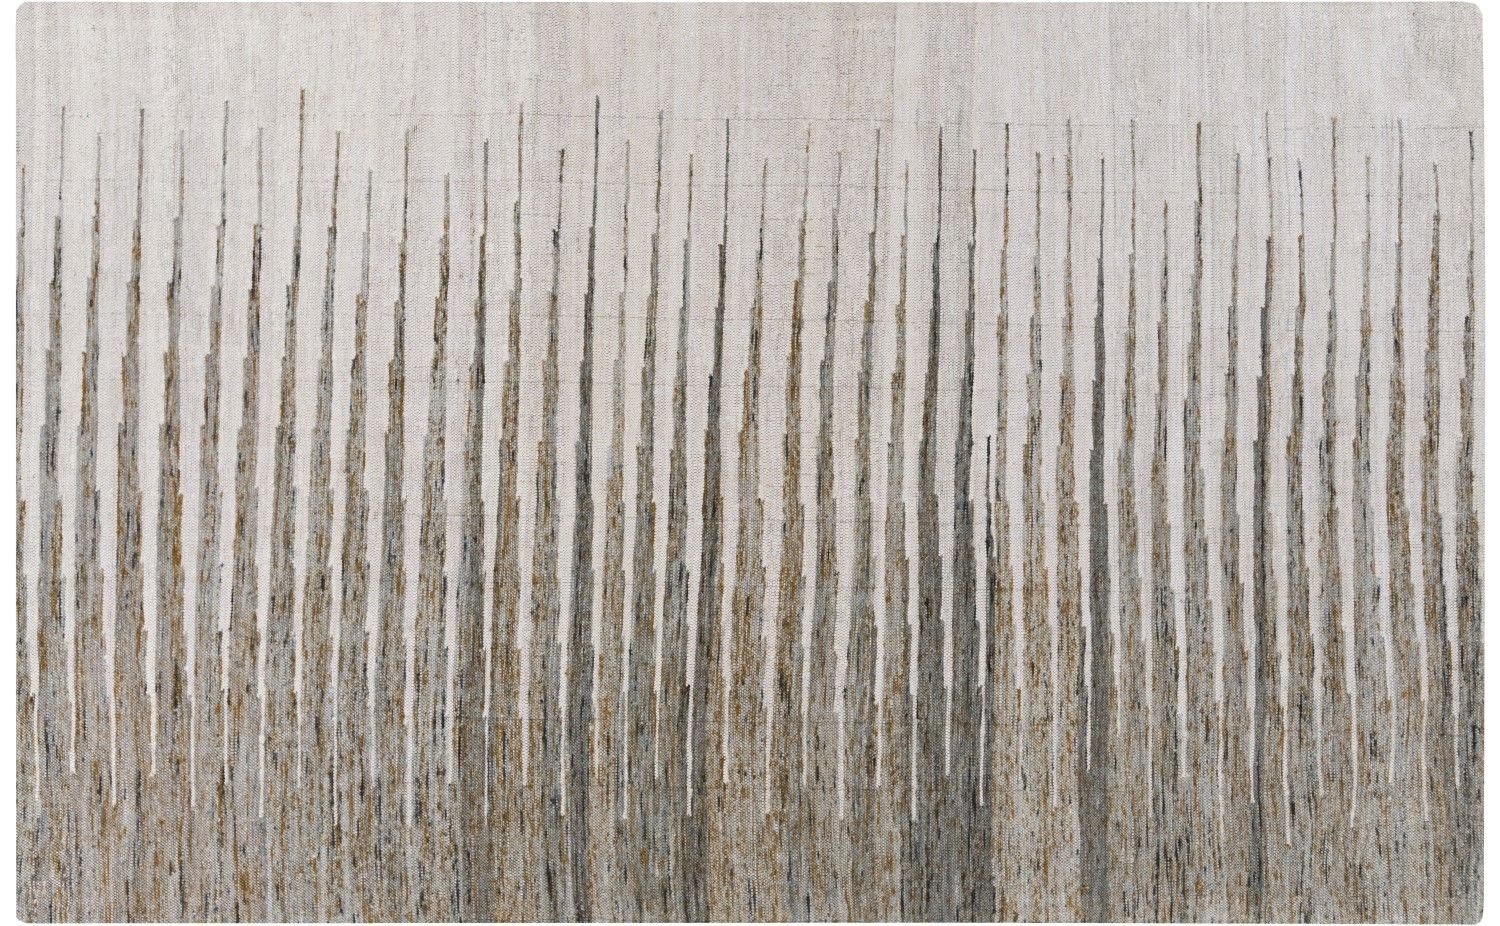 Our Azrou Rug is hand woven of lustrous recycled cotton. This flatweave rug features a gradient pattern of dark-to-light and wide-to-thin stripes of light grey and mocha, with a bit of rust and black mixed in here and there. The ground is ivory. As each rug is unique, slight variations in dyes and weave are to be expected.    •available sizes: 2' x 3', 2.5' x 8', 5' x 8' and 8' x 11'  •100% recycled cotton  •hand woven  •flatweave  •rug pad recommended  •slight variations in color and…